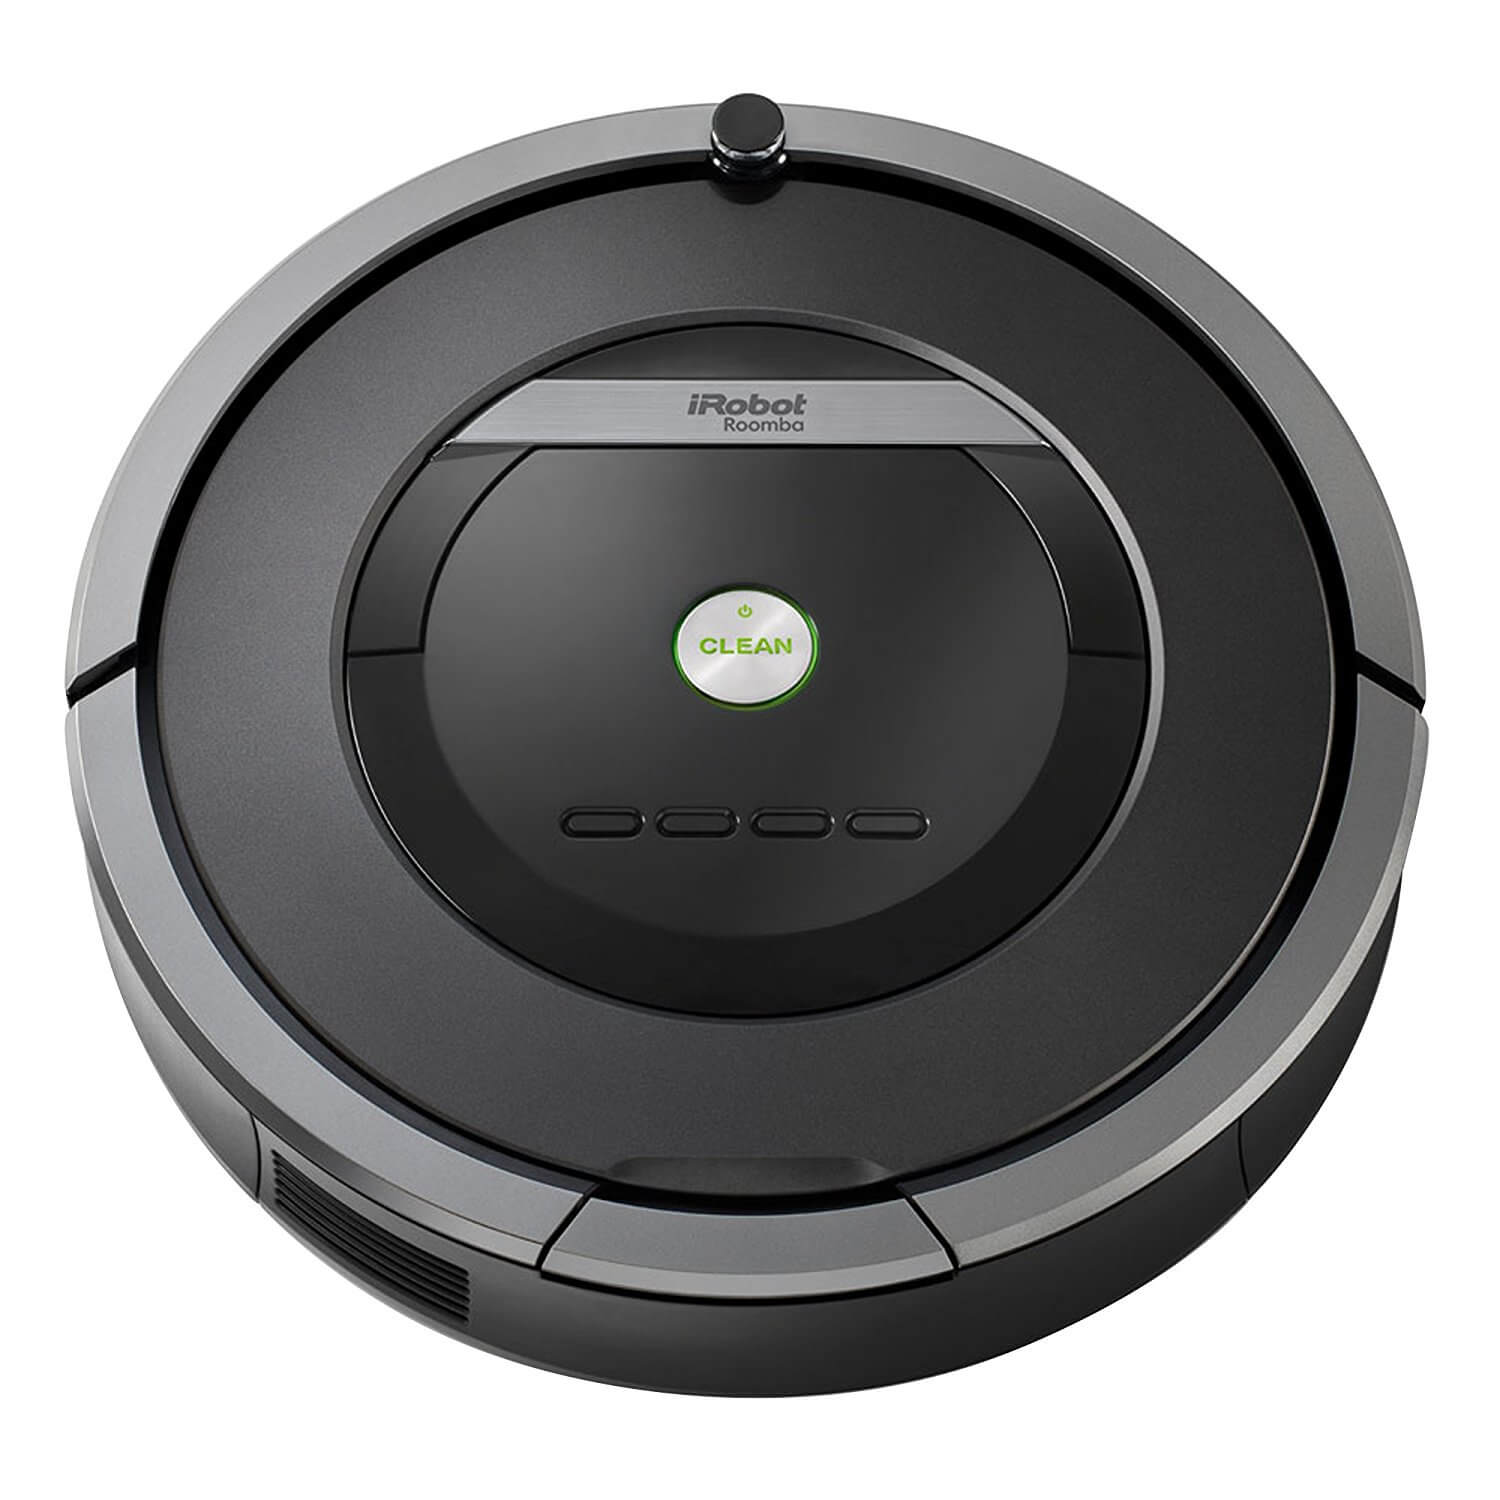 Roomba 870 Vacuum Cleaner Review